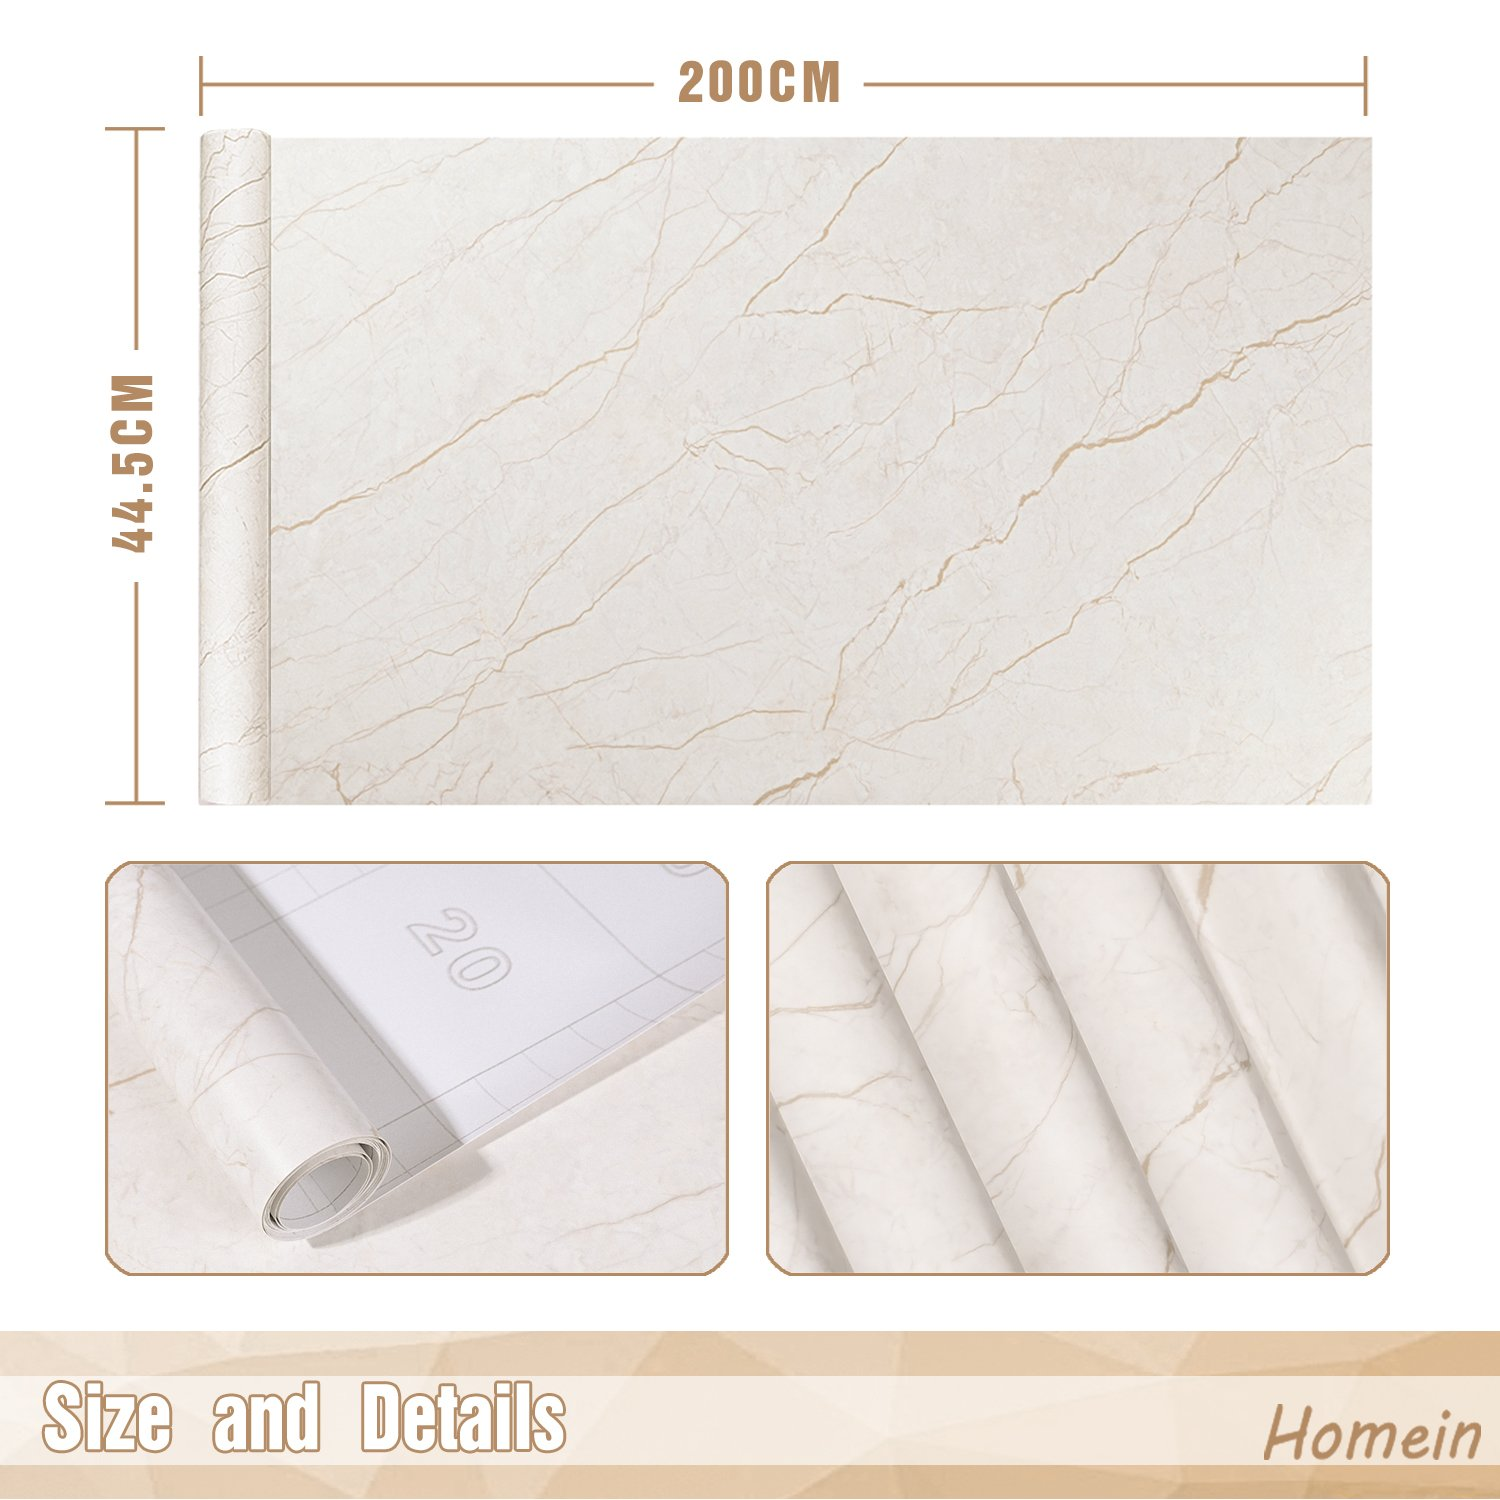 Marble Contact Paper Film Peel and Stick Countertops Vinyl Wallpaper Sticker, Authentic Marble Look, Durable,Waterproof for Home and Office 17.5 by 78.7 Inches(44.5 x 200cm) by Homein (Image #5)